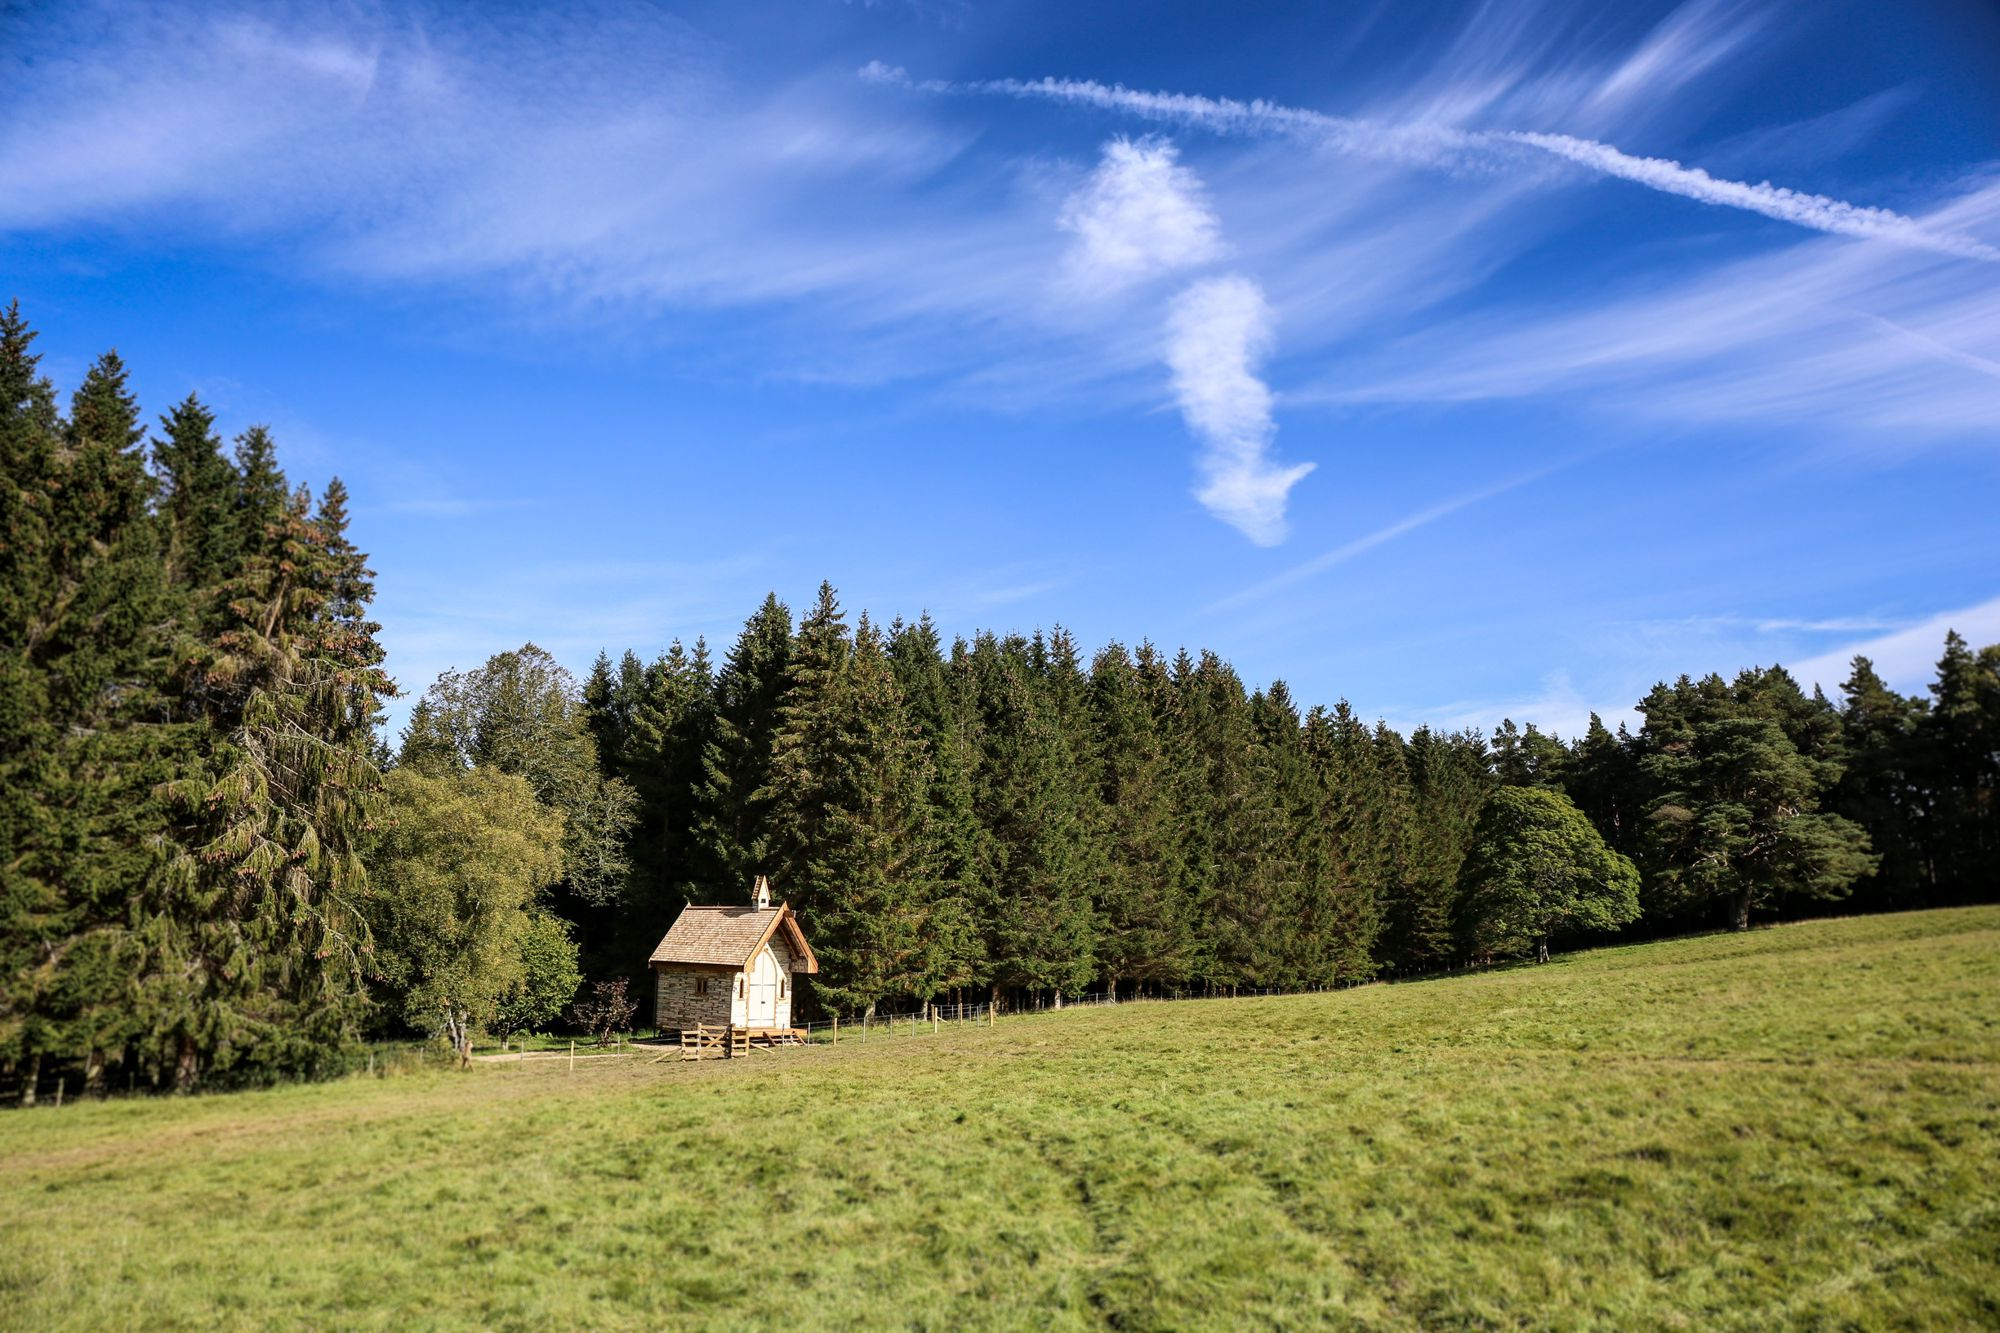 Luxury shepherds hut glamping in the heart of the Northumberland National Park.